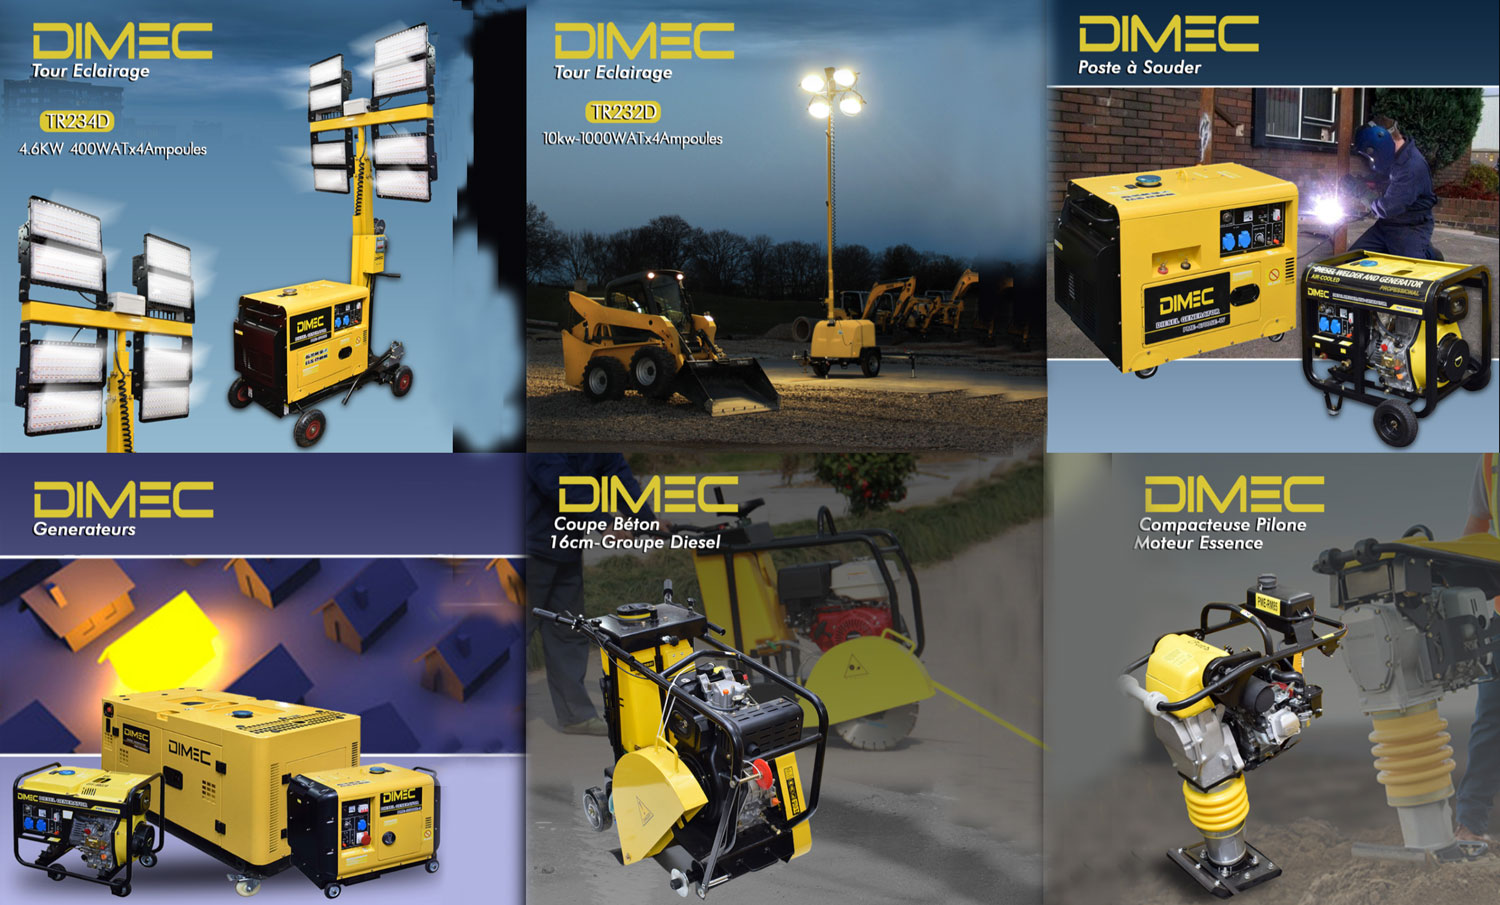 DIMEC Generators & Construction Equipments